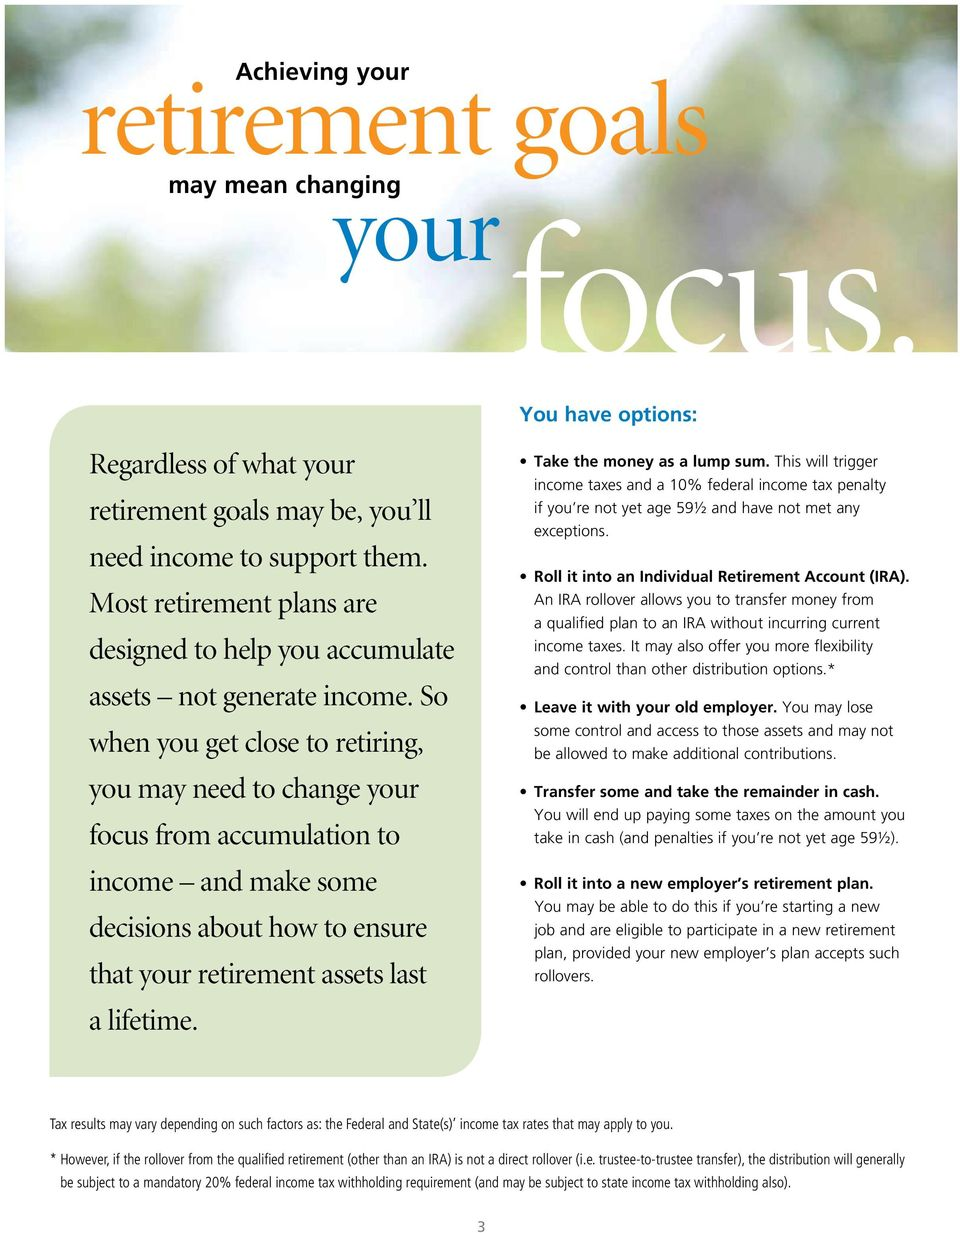 So when you get close to retiring, you may need to change your focus from accumulation to income and make some decisions about how to ensure that your retirement assets last a lifetime.